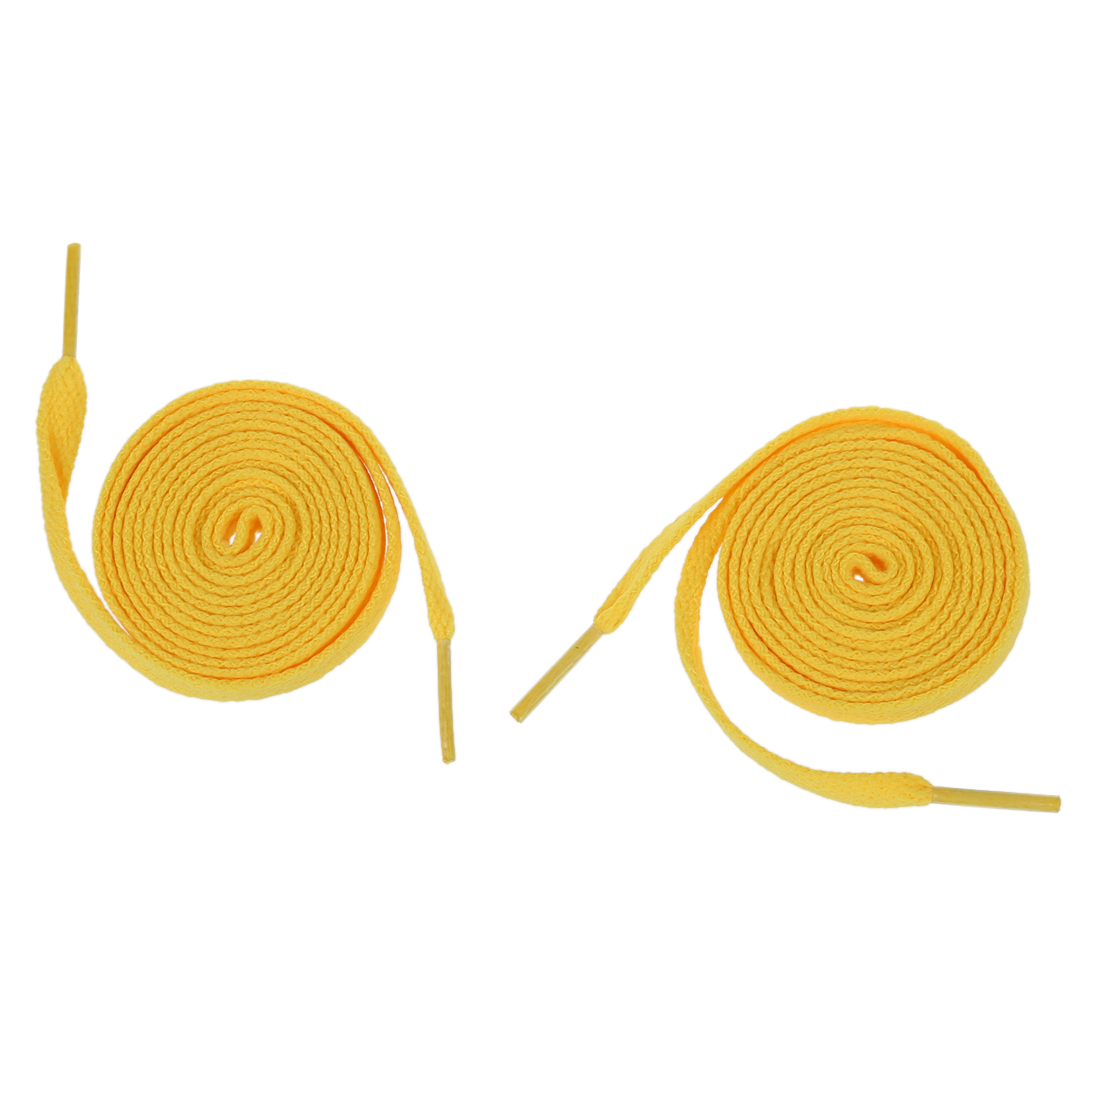 New Pair Yellow Flat Strings Wide Shoelaces for Sports ShoesNew Pair Yellow Flat Strings Wide Shoelaces for Sports Shoes